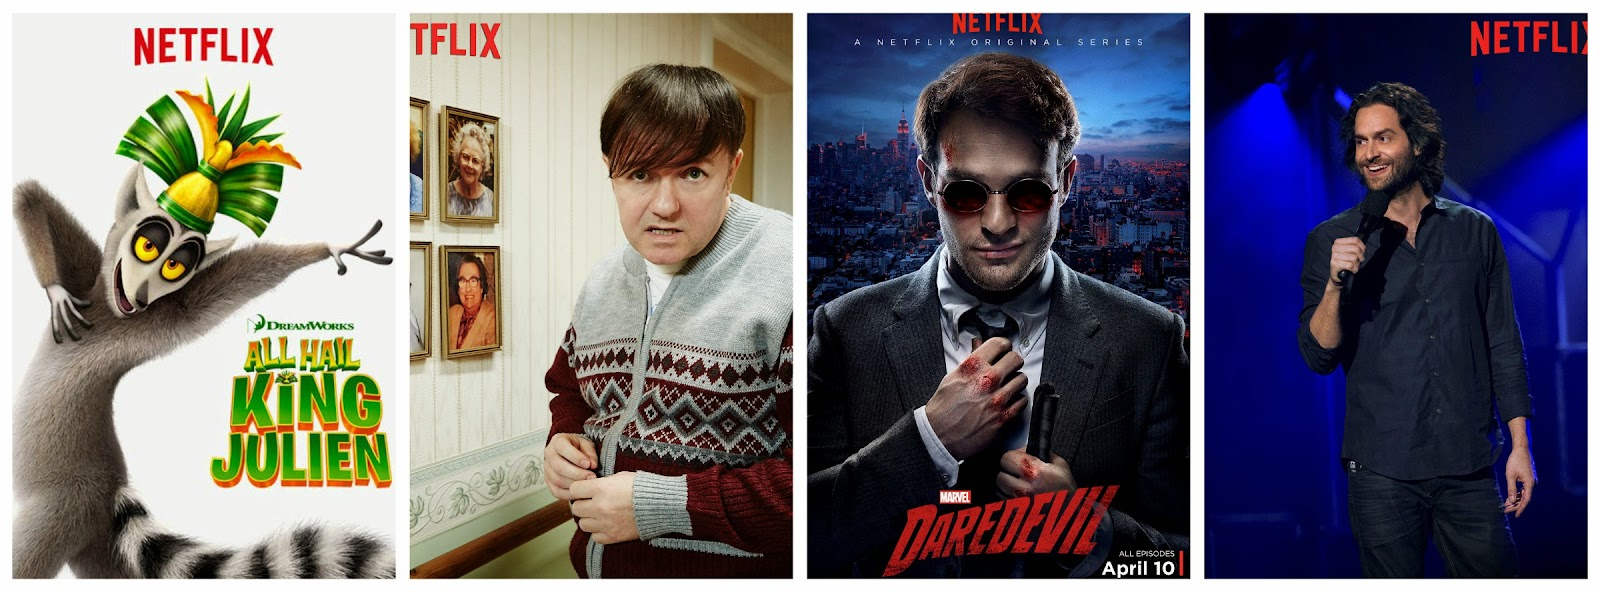 Netflix Originals this April 2015 #streamteam